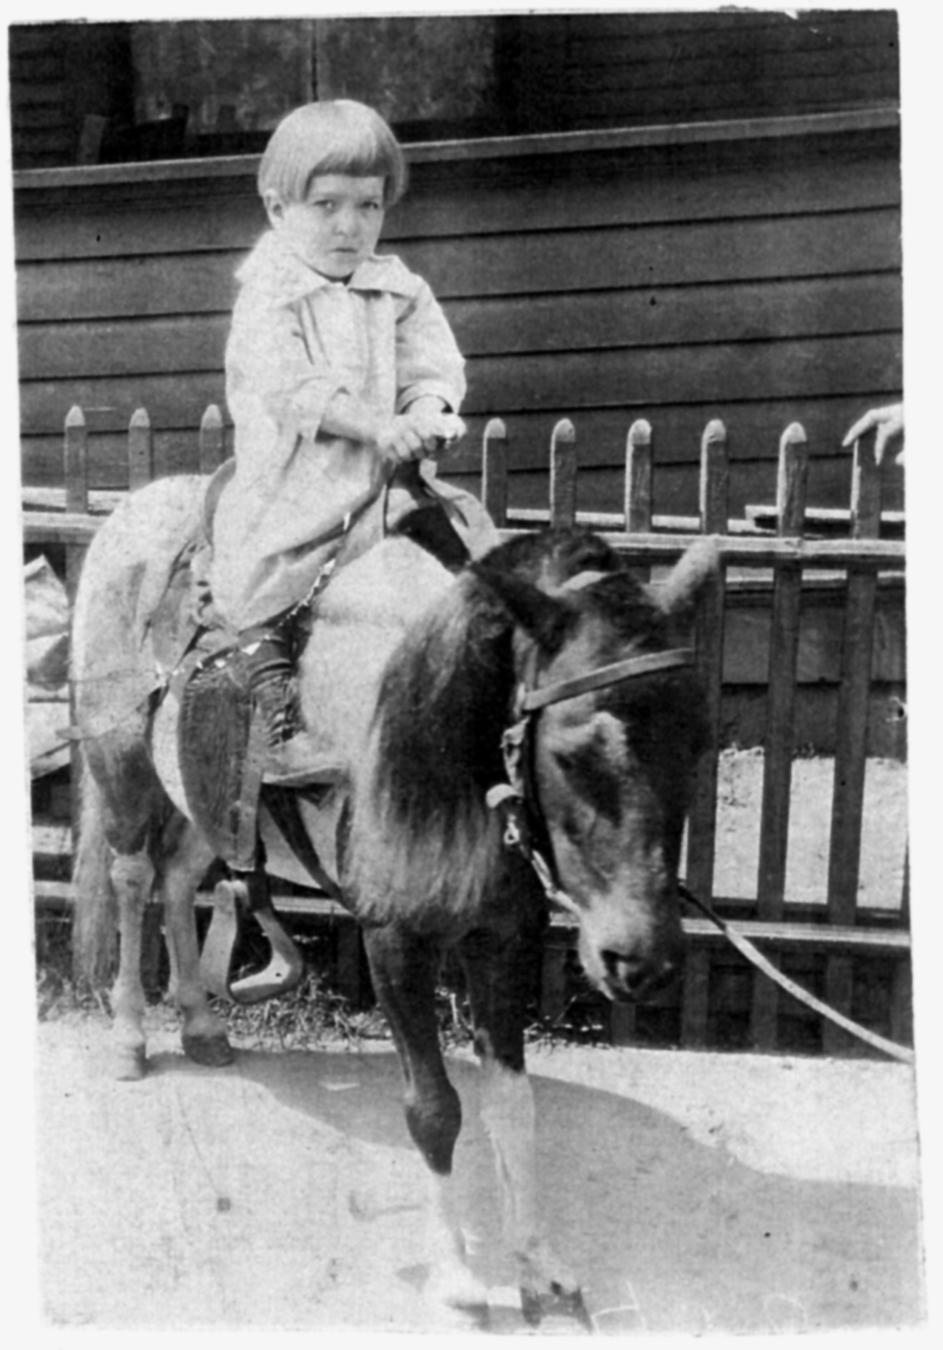 Kwolek at age three sitting on a small horse in a black and white photo.